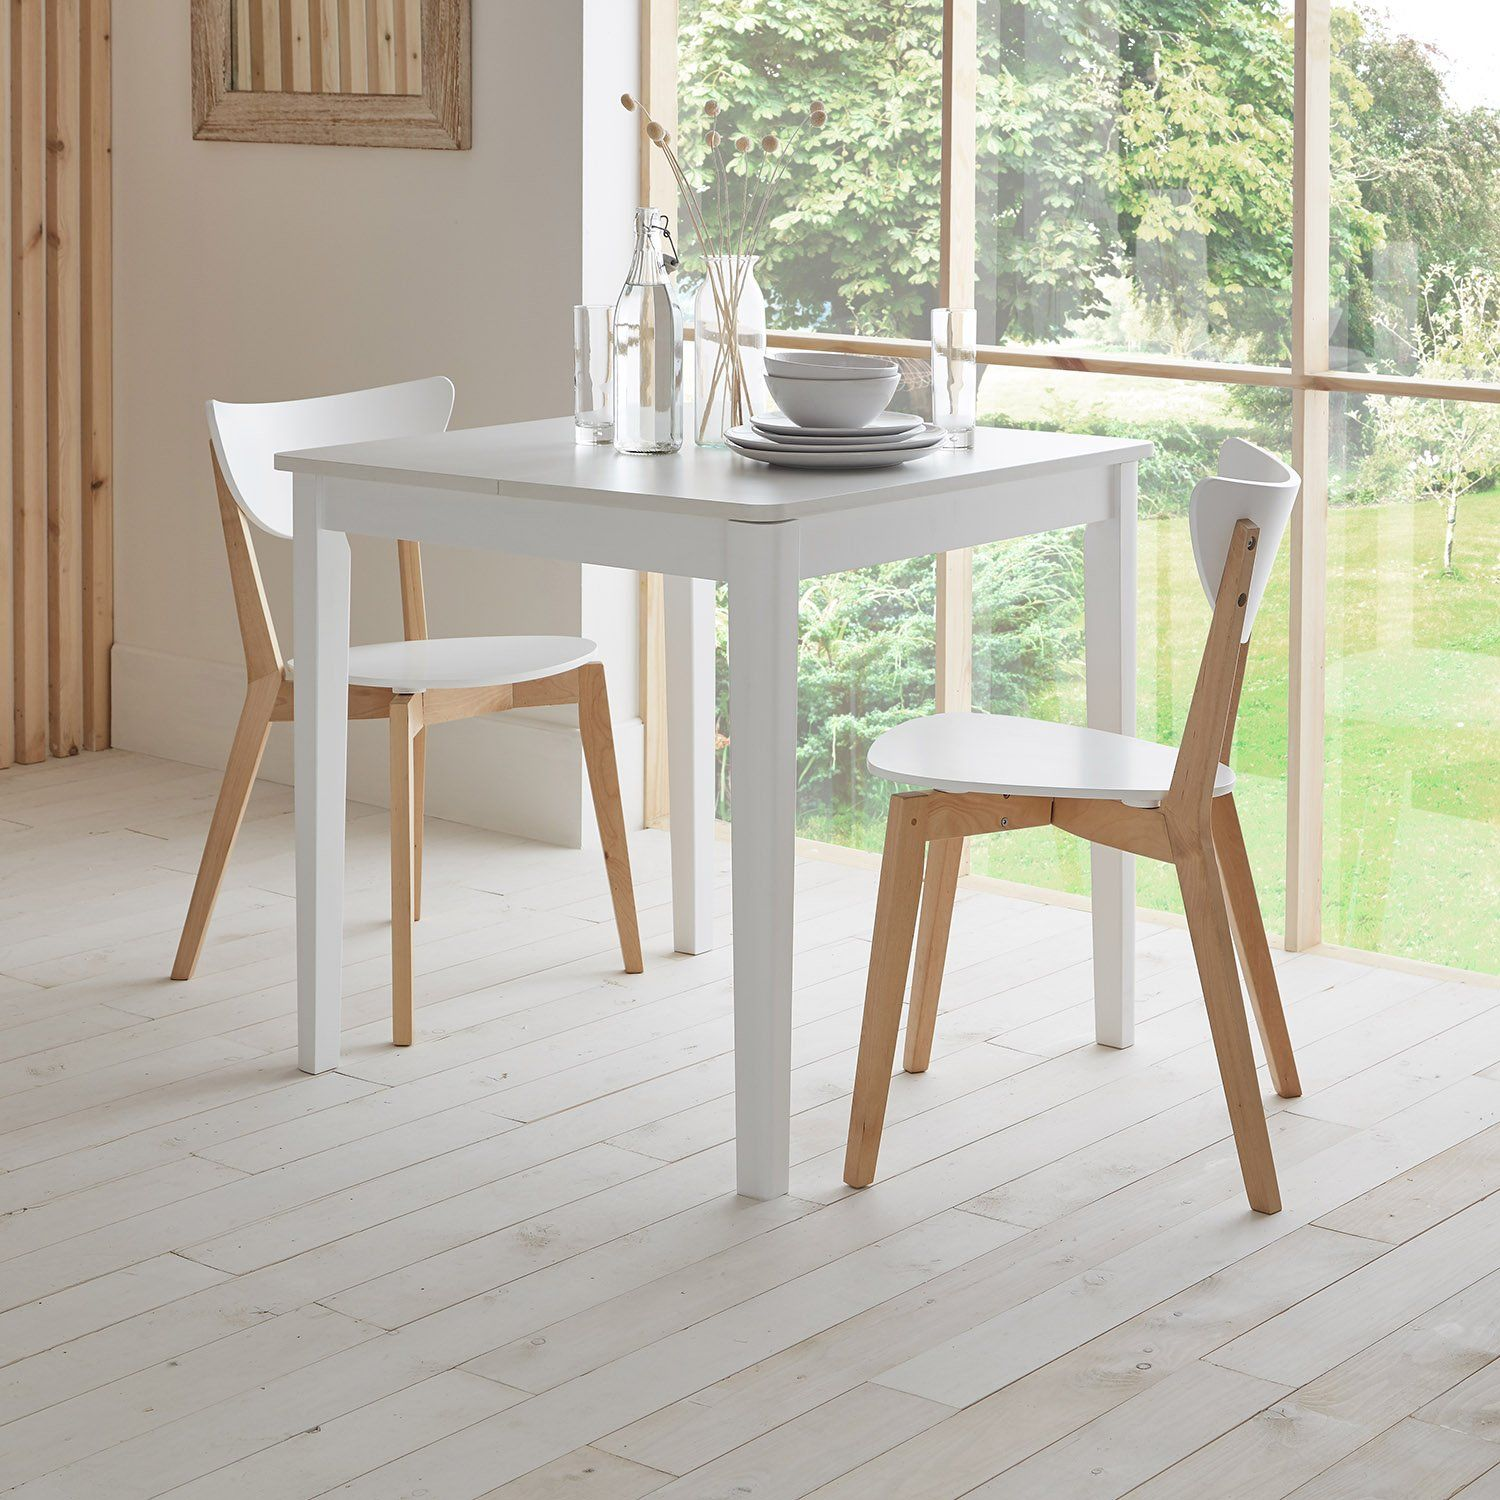 Paul extendable table with 2 chairs - small - white - Laura James